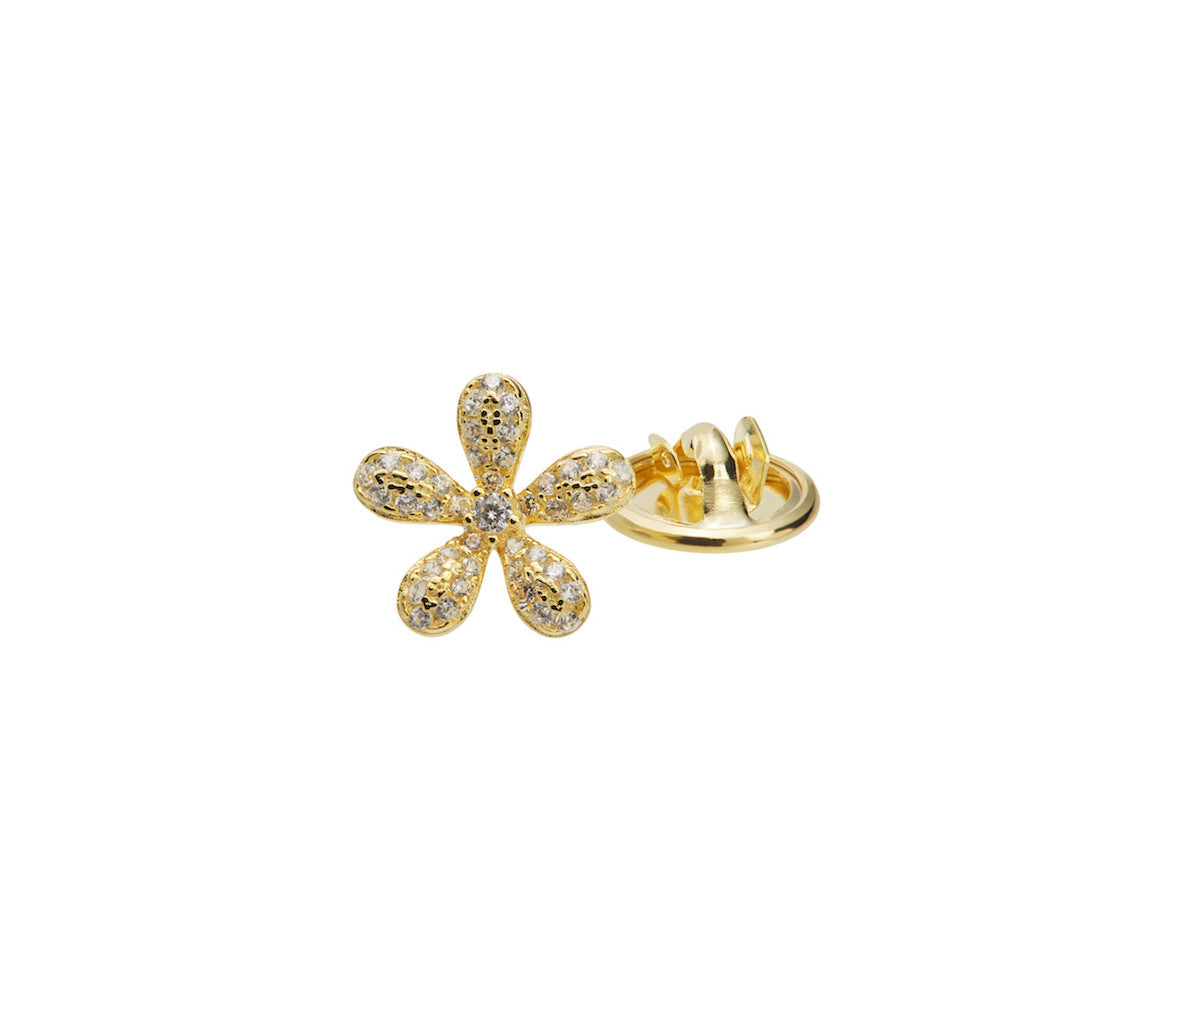 Yellow Gold-plated Silver Mini Flower Brooch